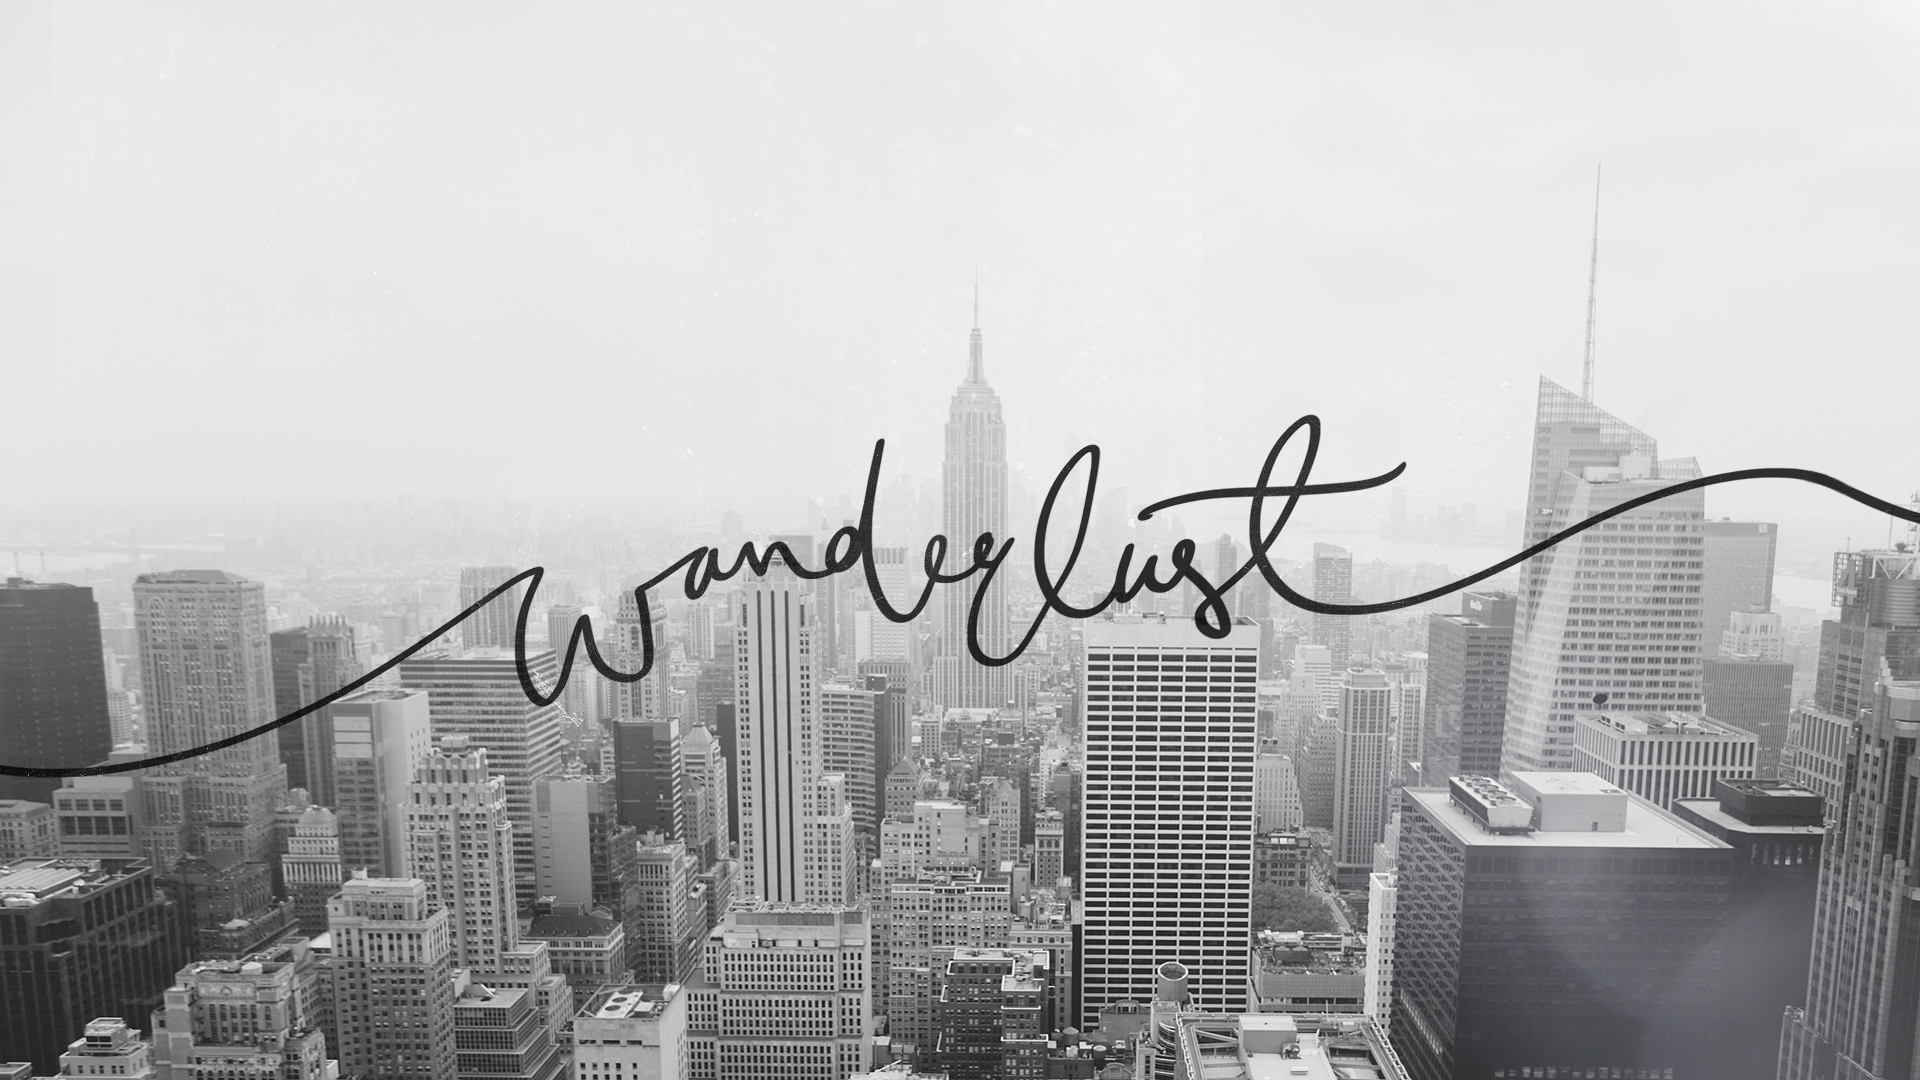 Good Wallpaper Home Screen New York - tumblr_static_lemluxhv7yo8wk0gwcg4sw0c  Graphic_807385.jpg